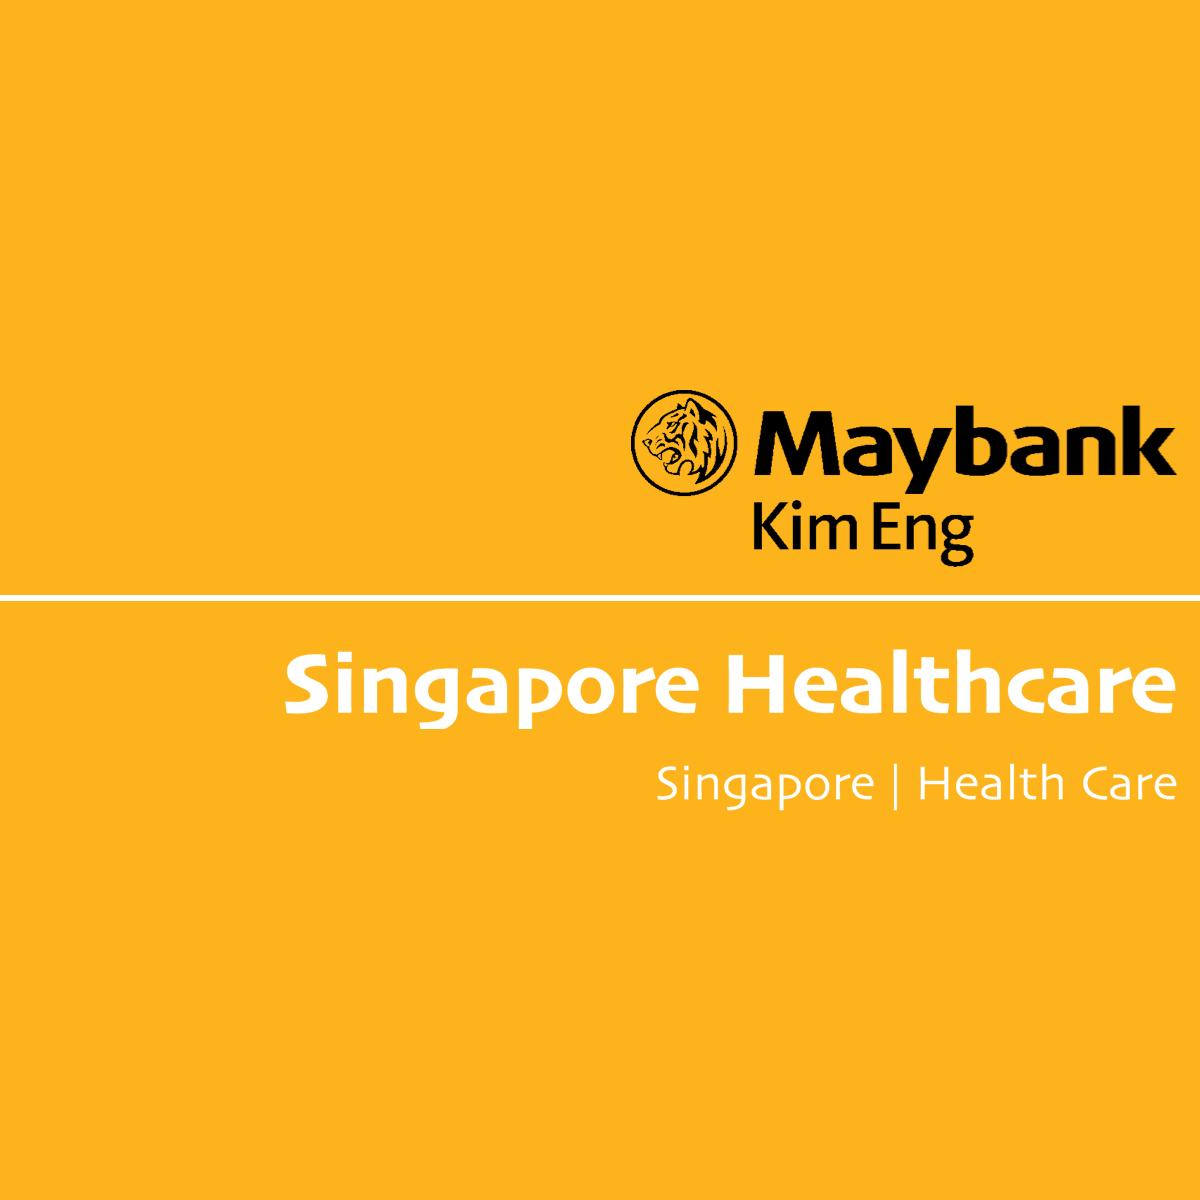 Singapore Healthcare - Maybank Kim Eng 2017-06-05: